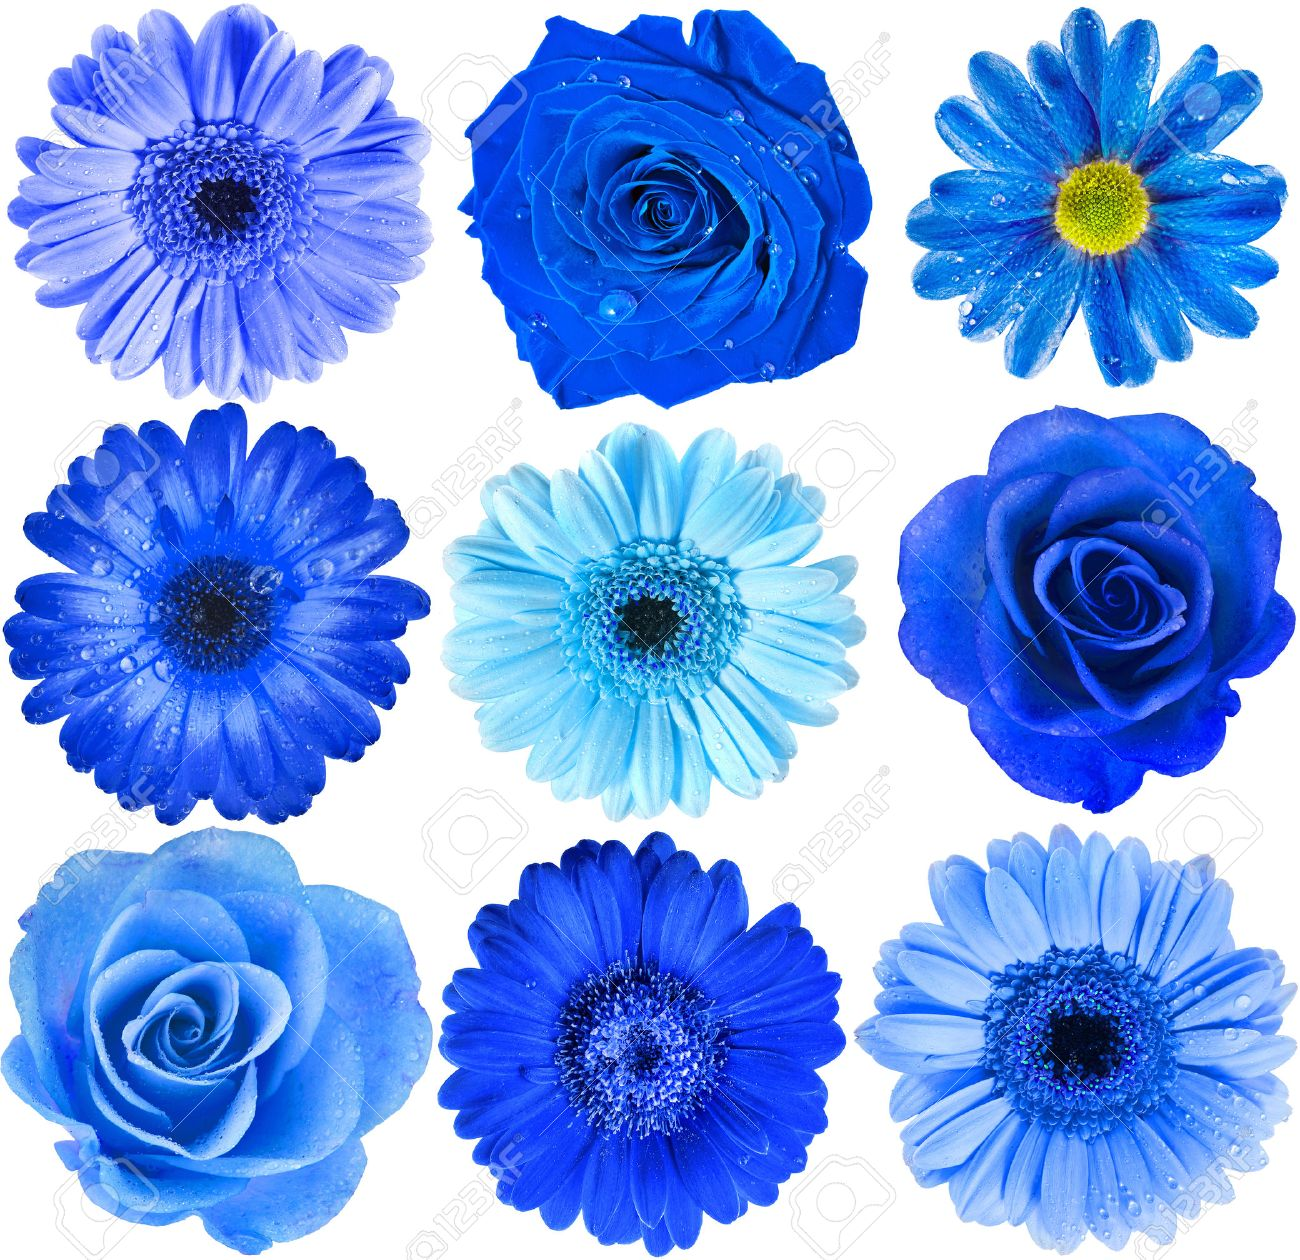 Blue flower stock photos royalty free blue flower images various blue flowers head top view close up selection isolated on white background izmirmasajfo Image collections